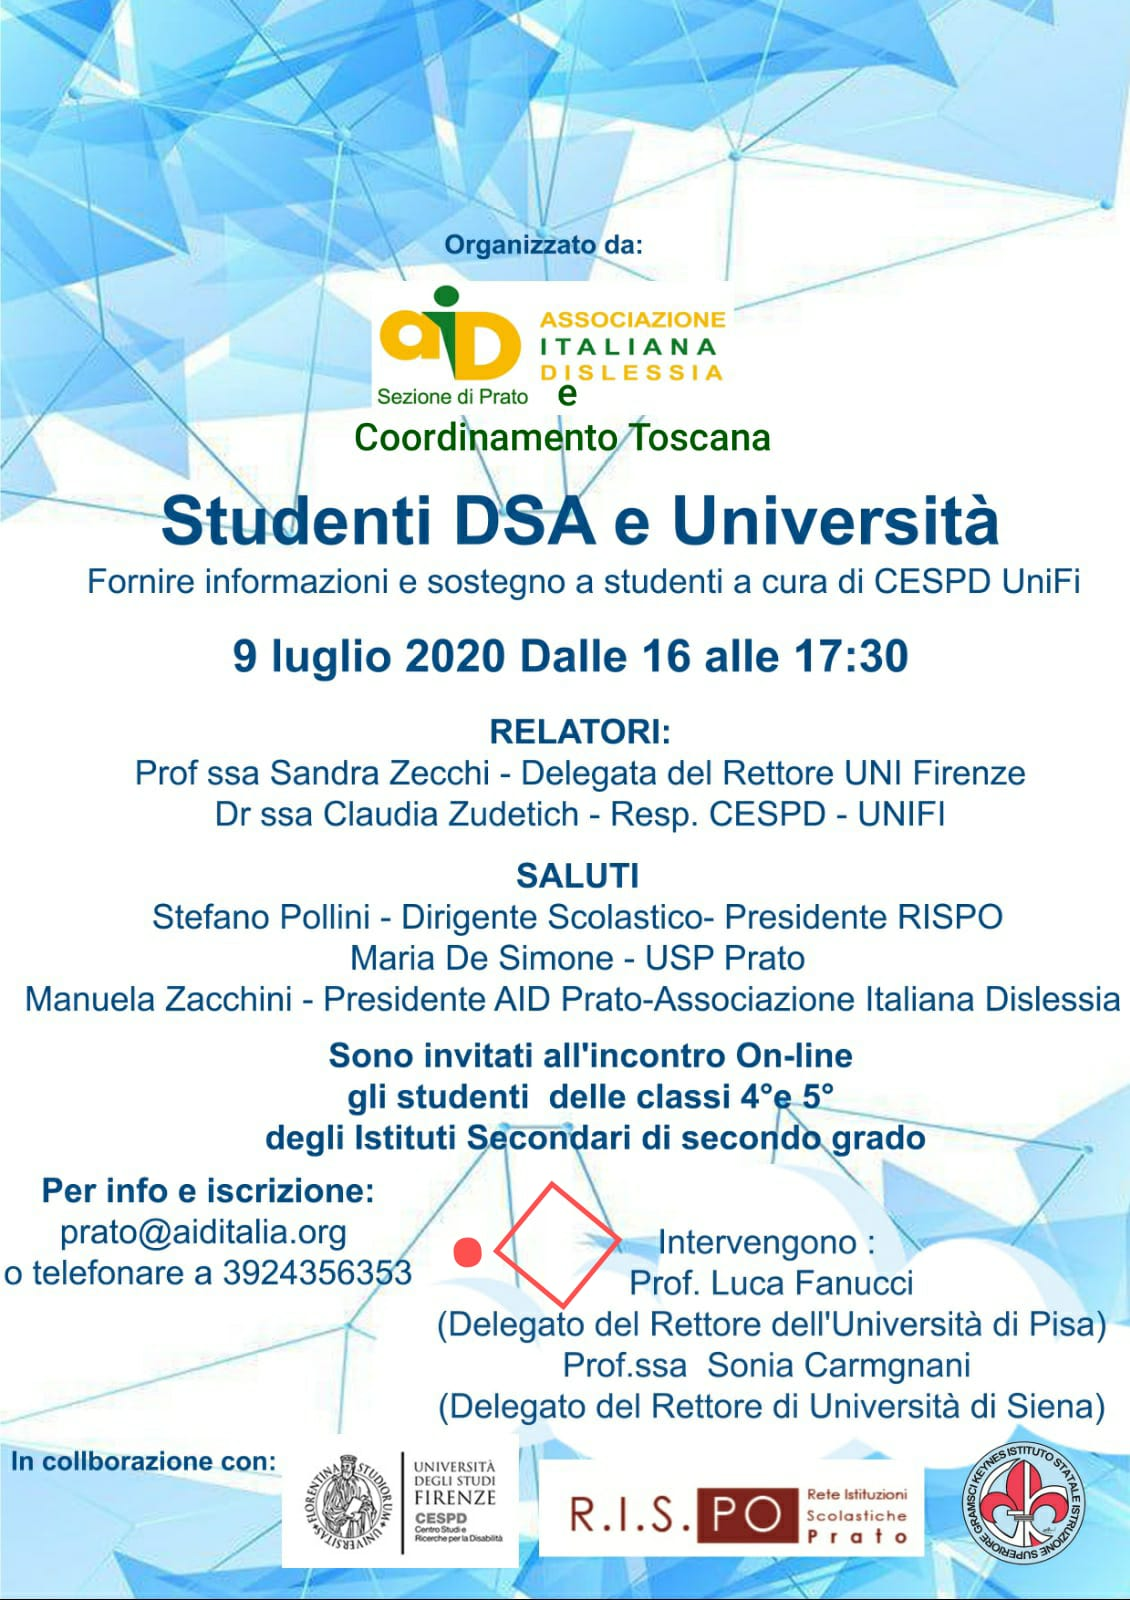 Studenti con DSA e Università: incontro informativo online